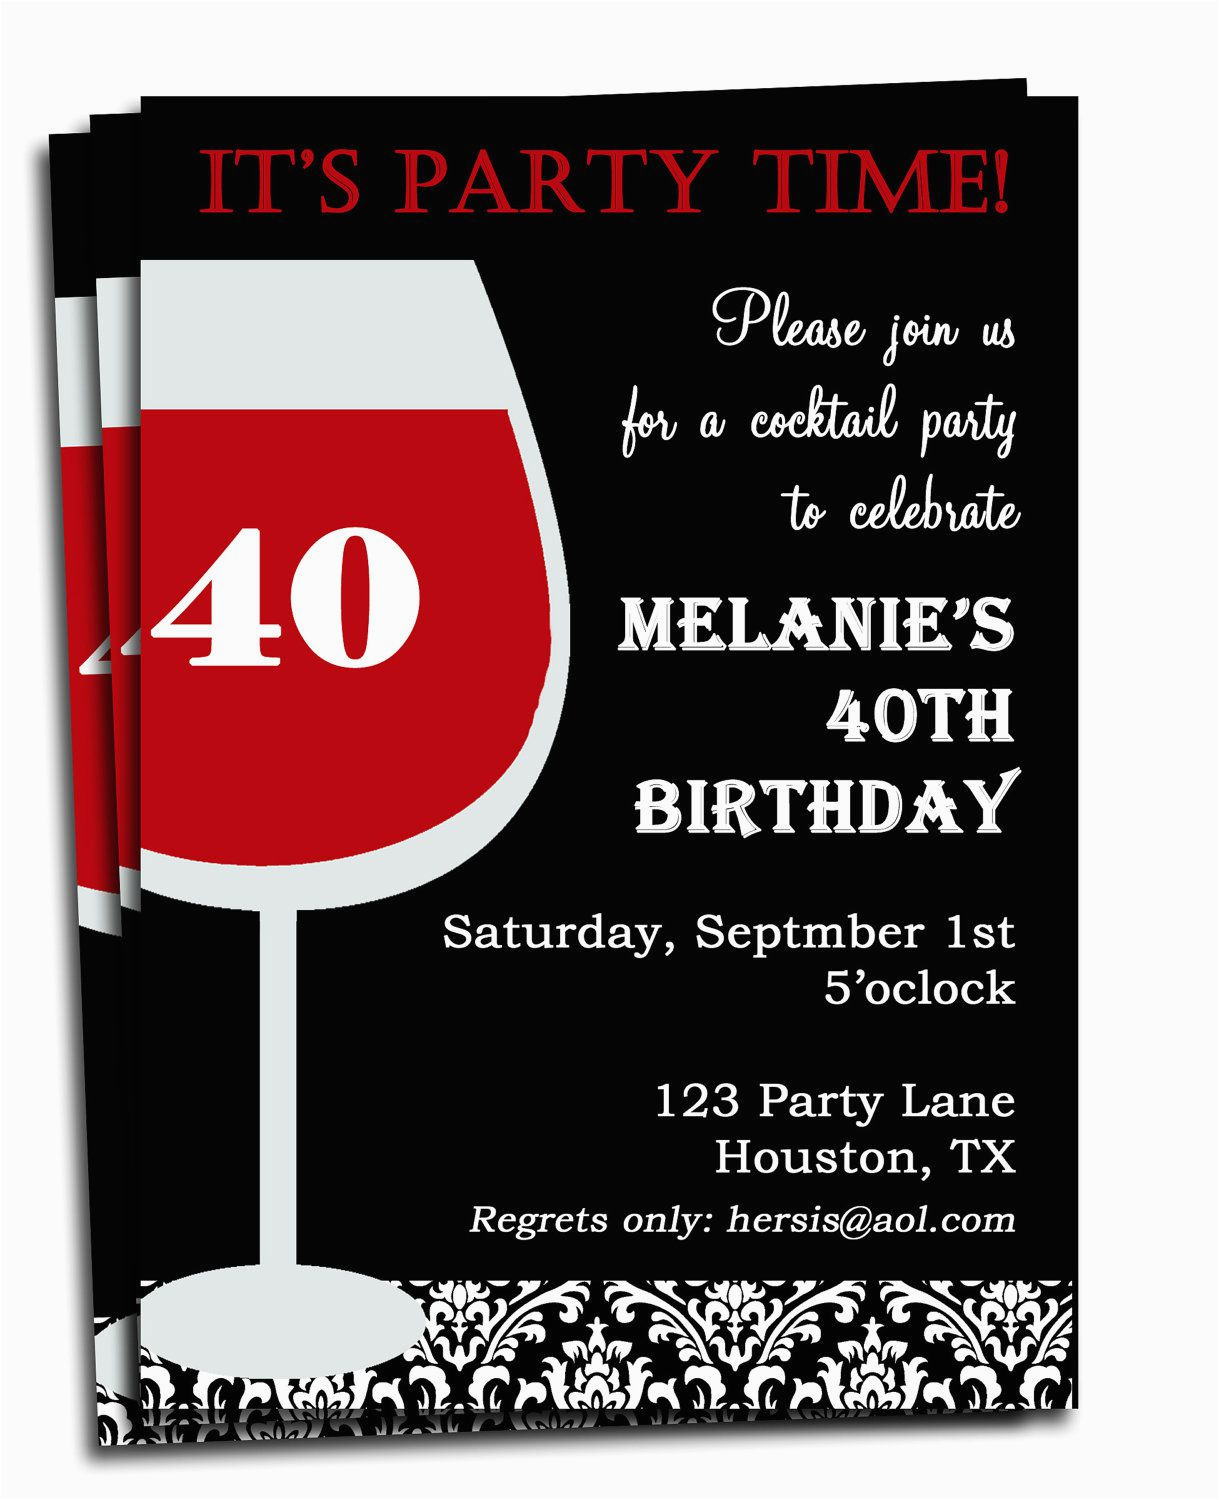 Funny Birthday Invites for Adults Funny Birthday Invites for Adults Funny Birthday Party